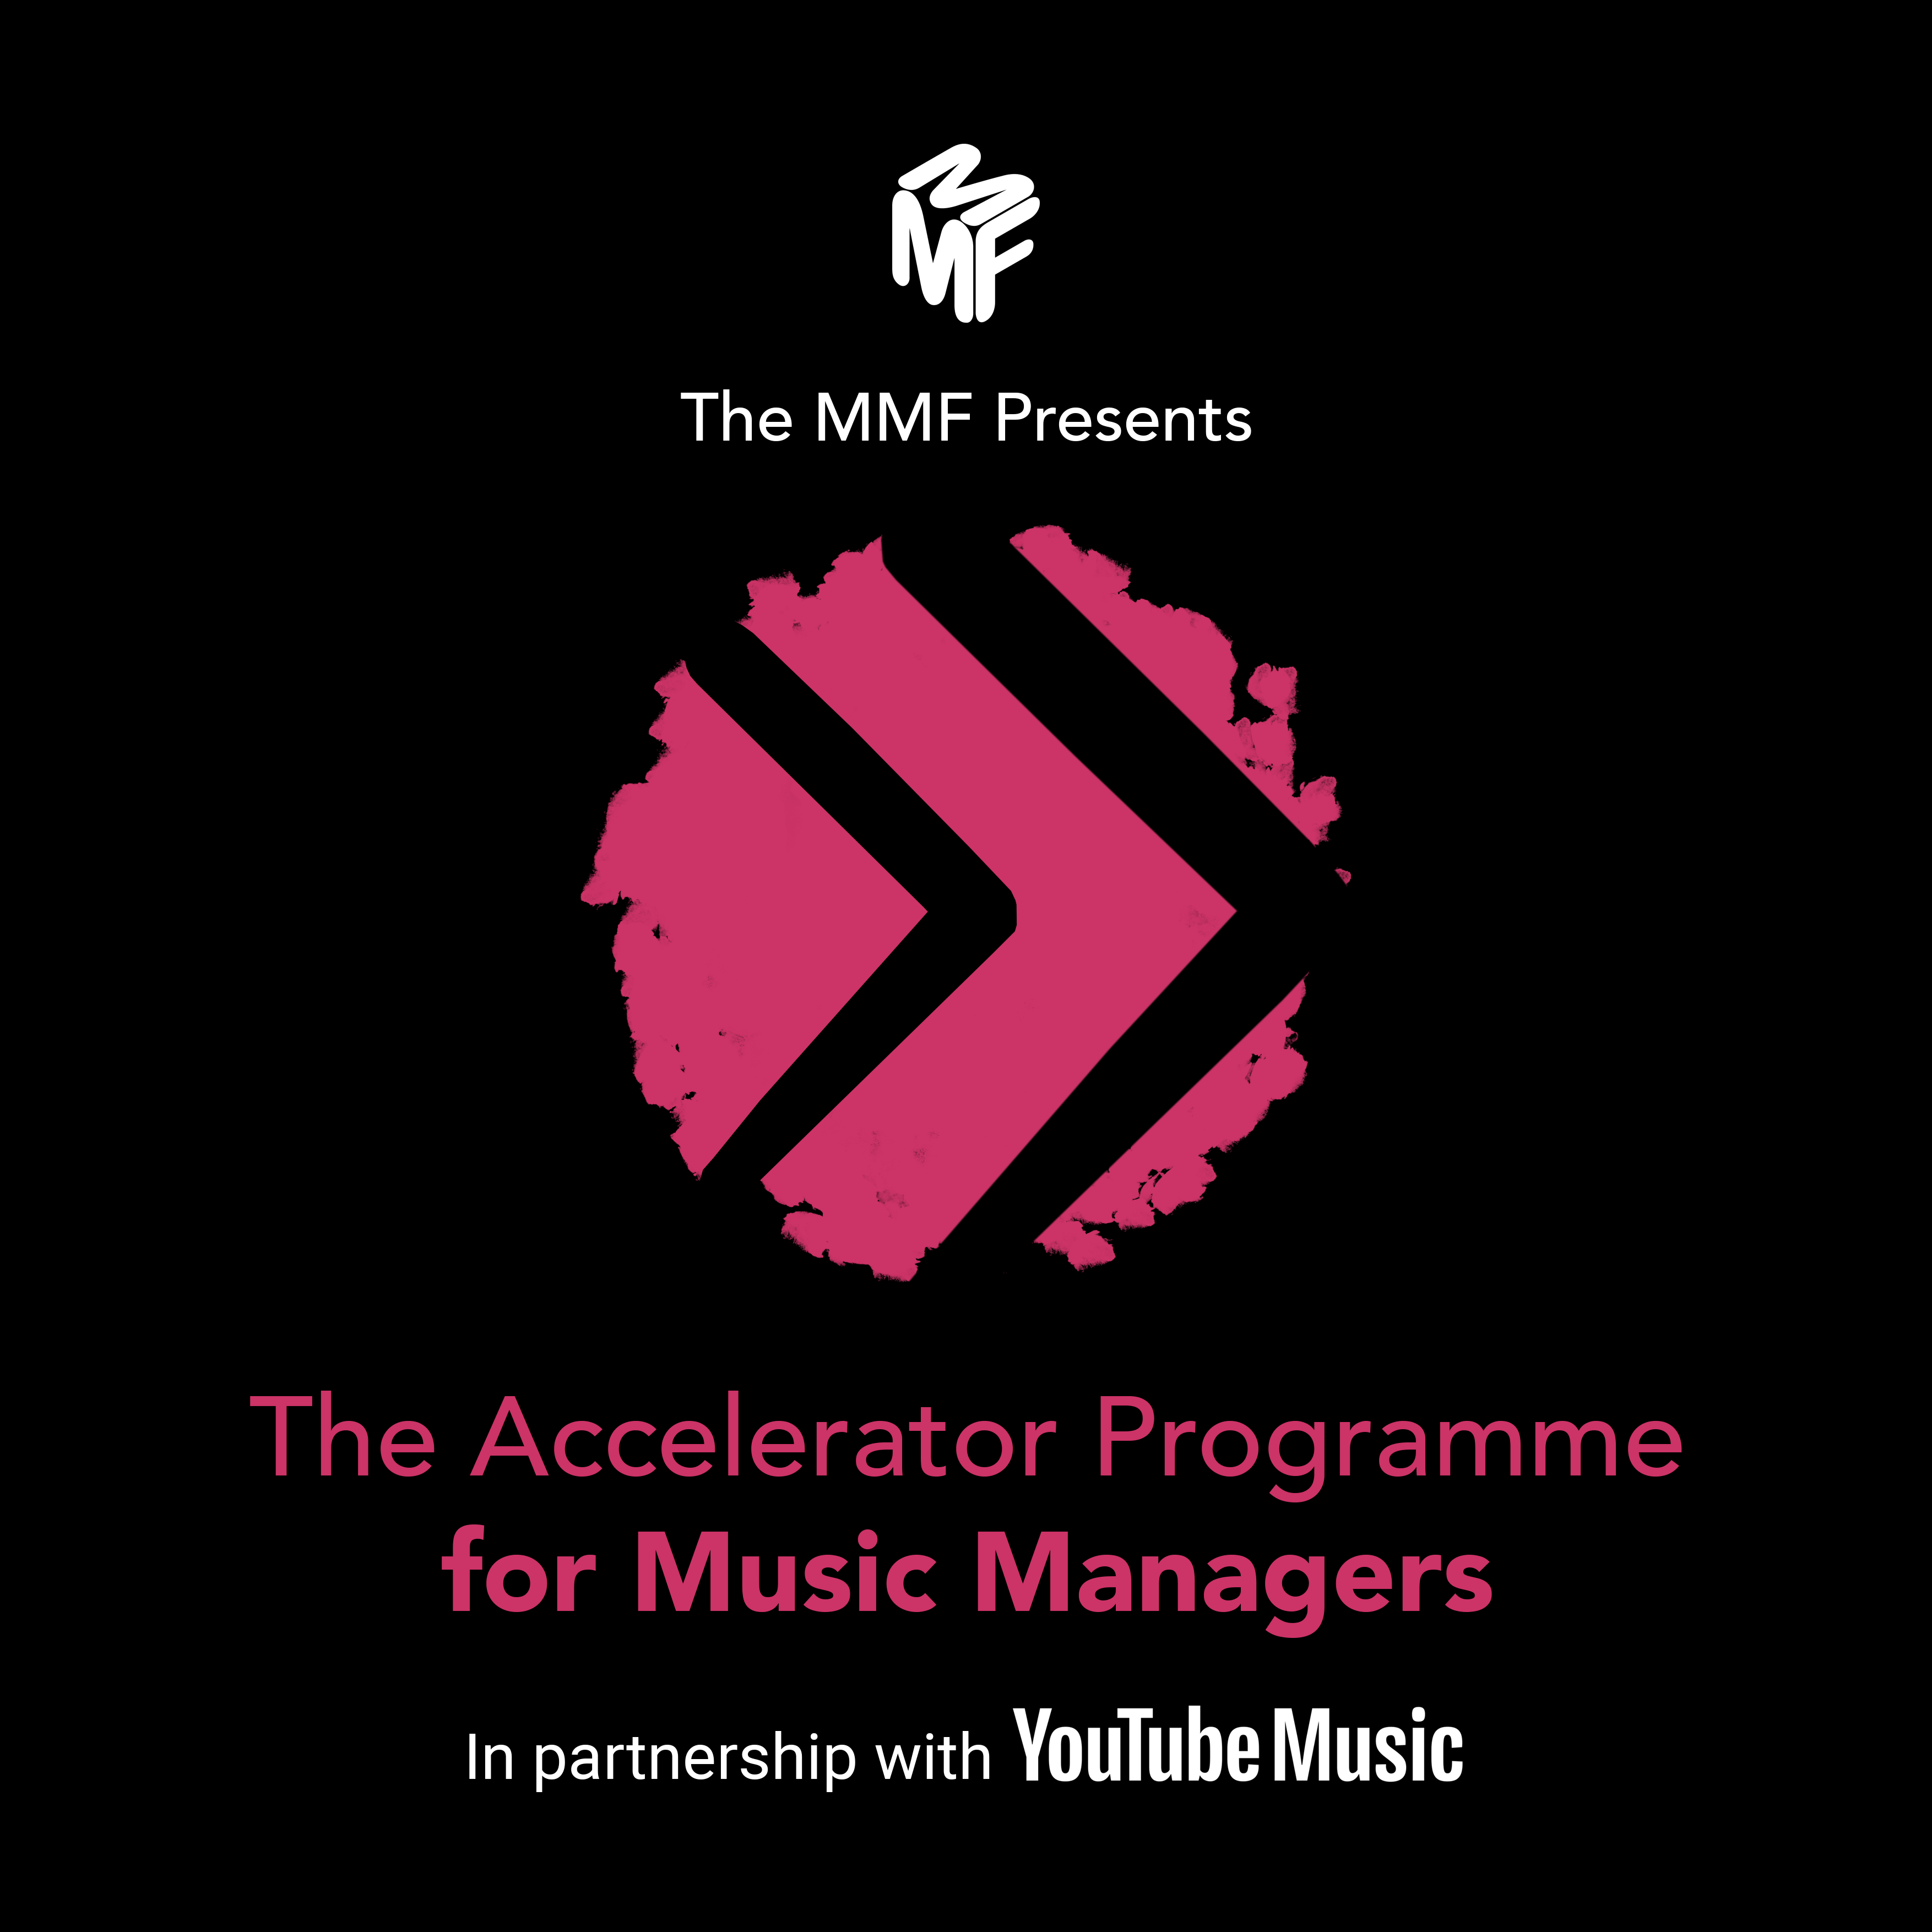 MMF launches Accelerator Programme for Music Managers in partnership with YouTube Music and Scottish Music Industry Association (SMIA)